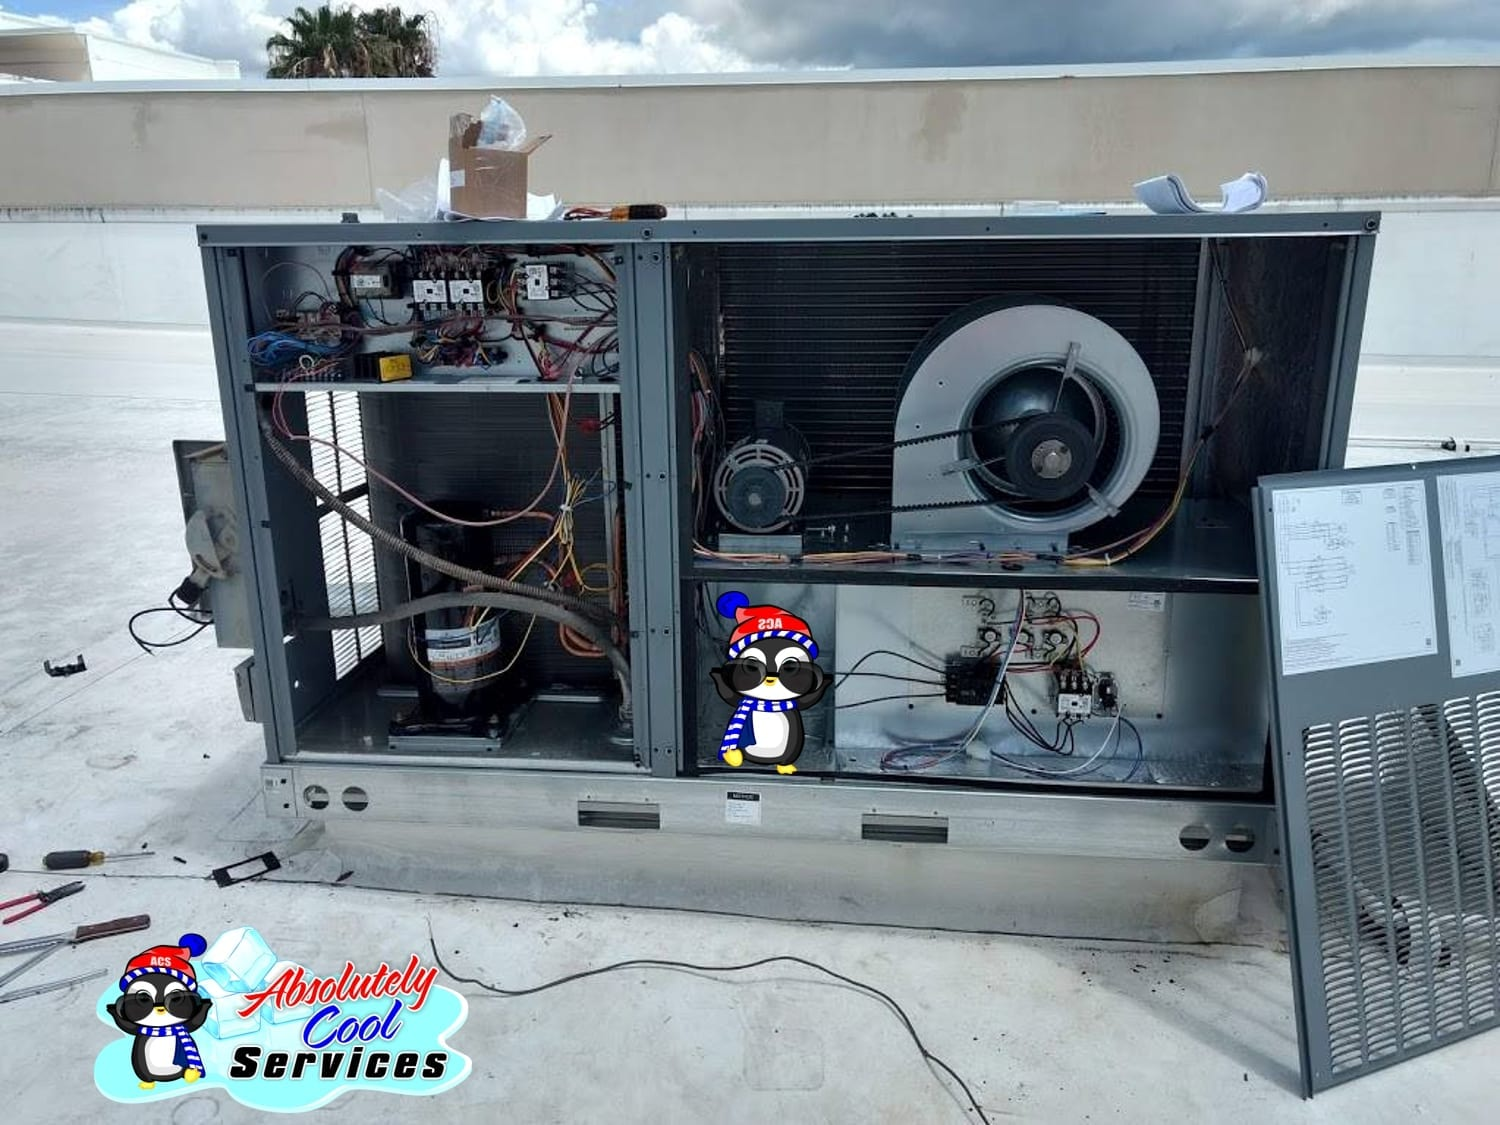 Roof Air Conditioning | Emergency Air Conditioning Installation Service near Loxahatchee